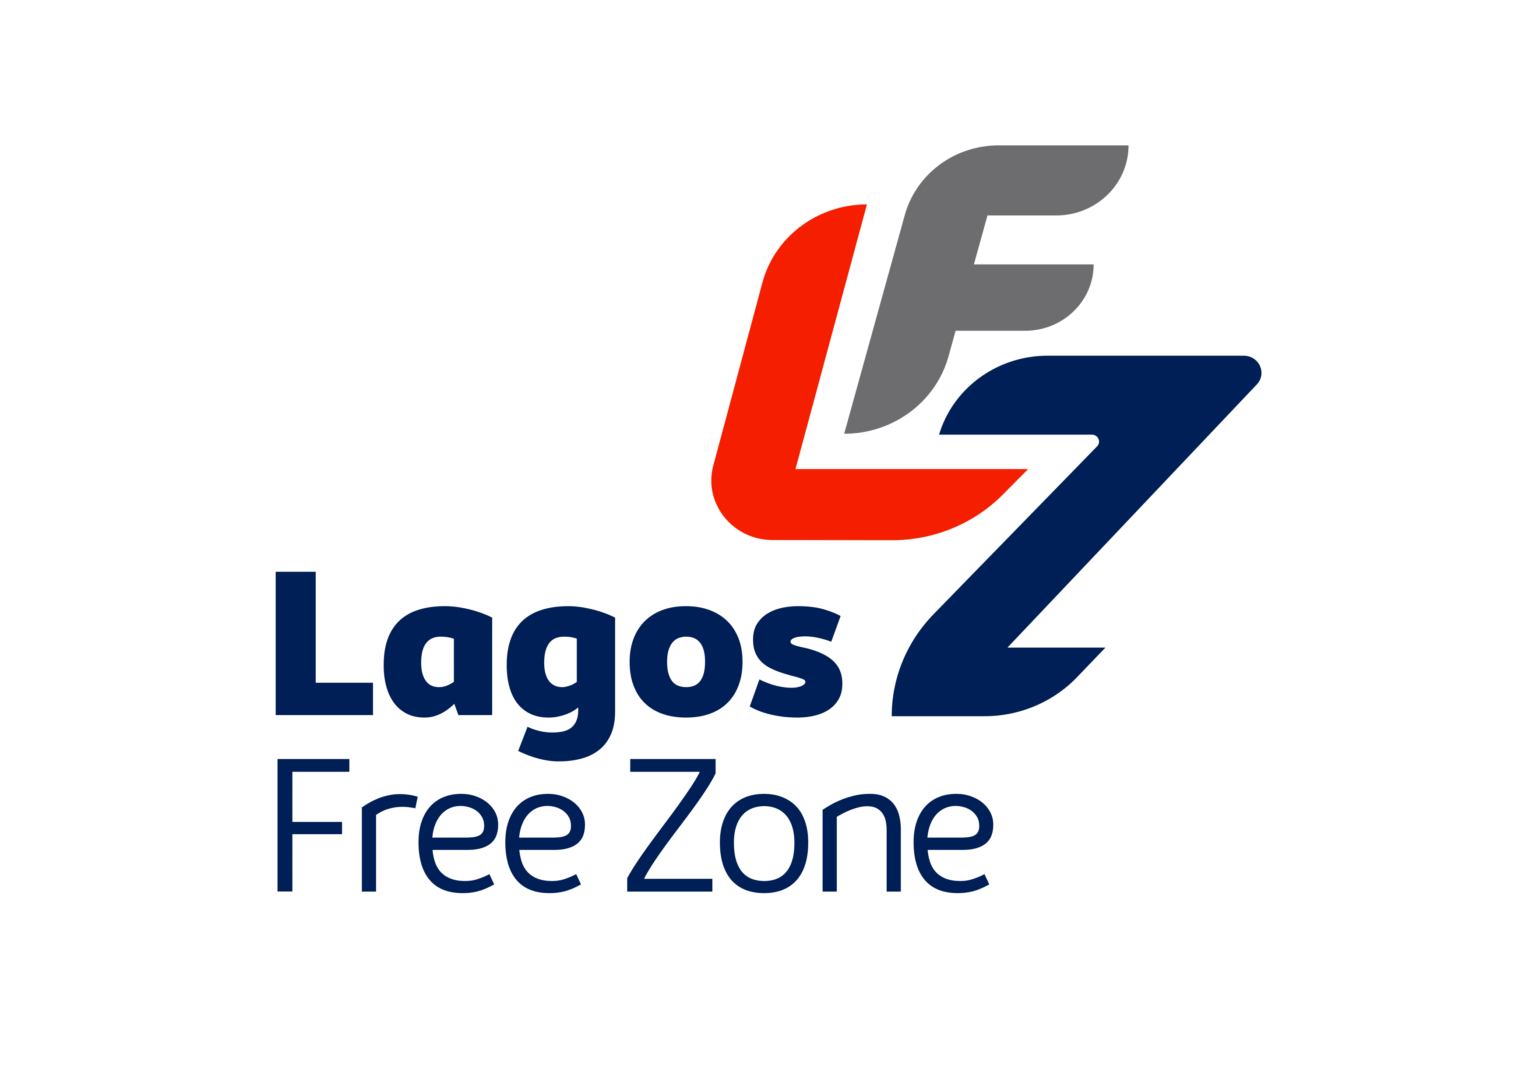 Lagos Free Zone joins CWEIC